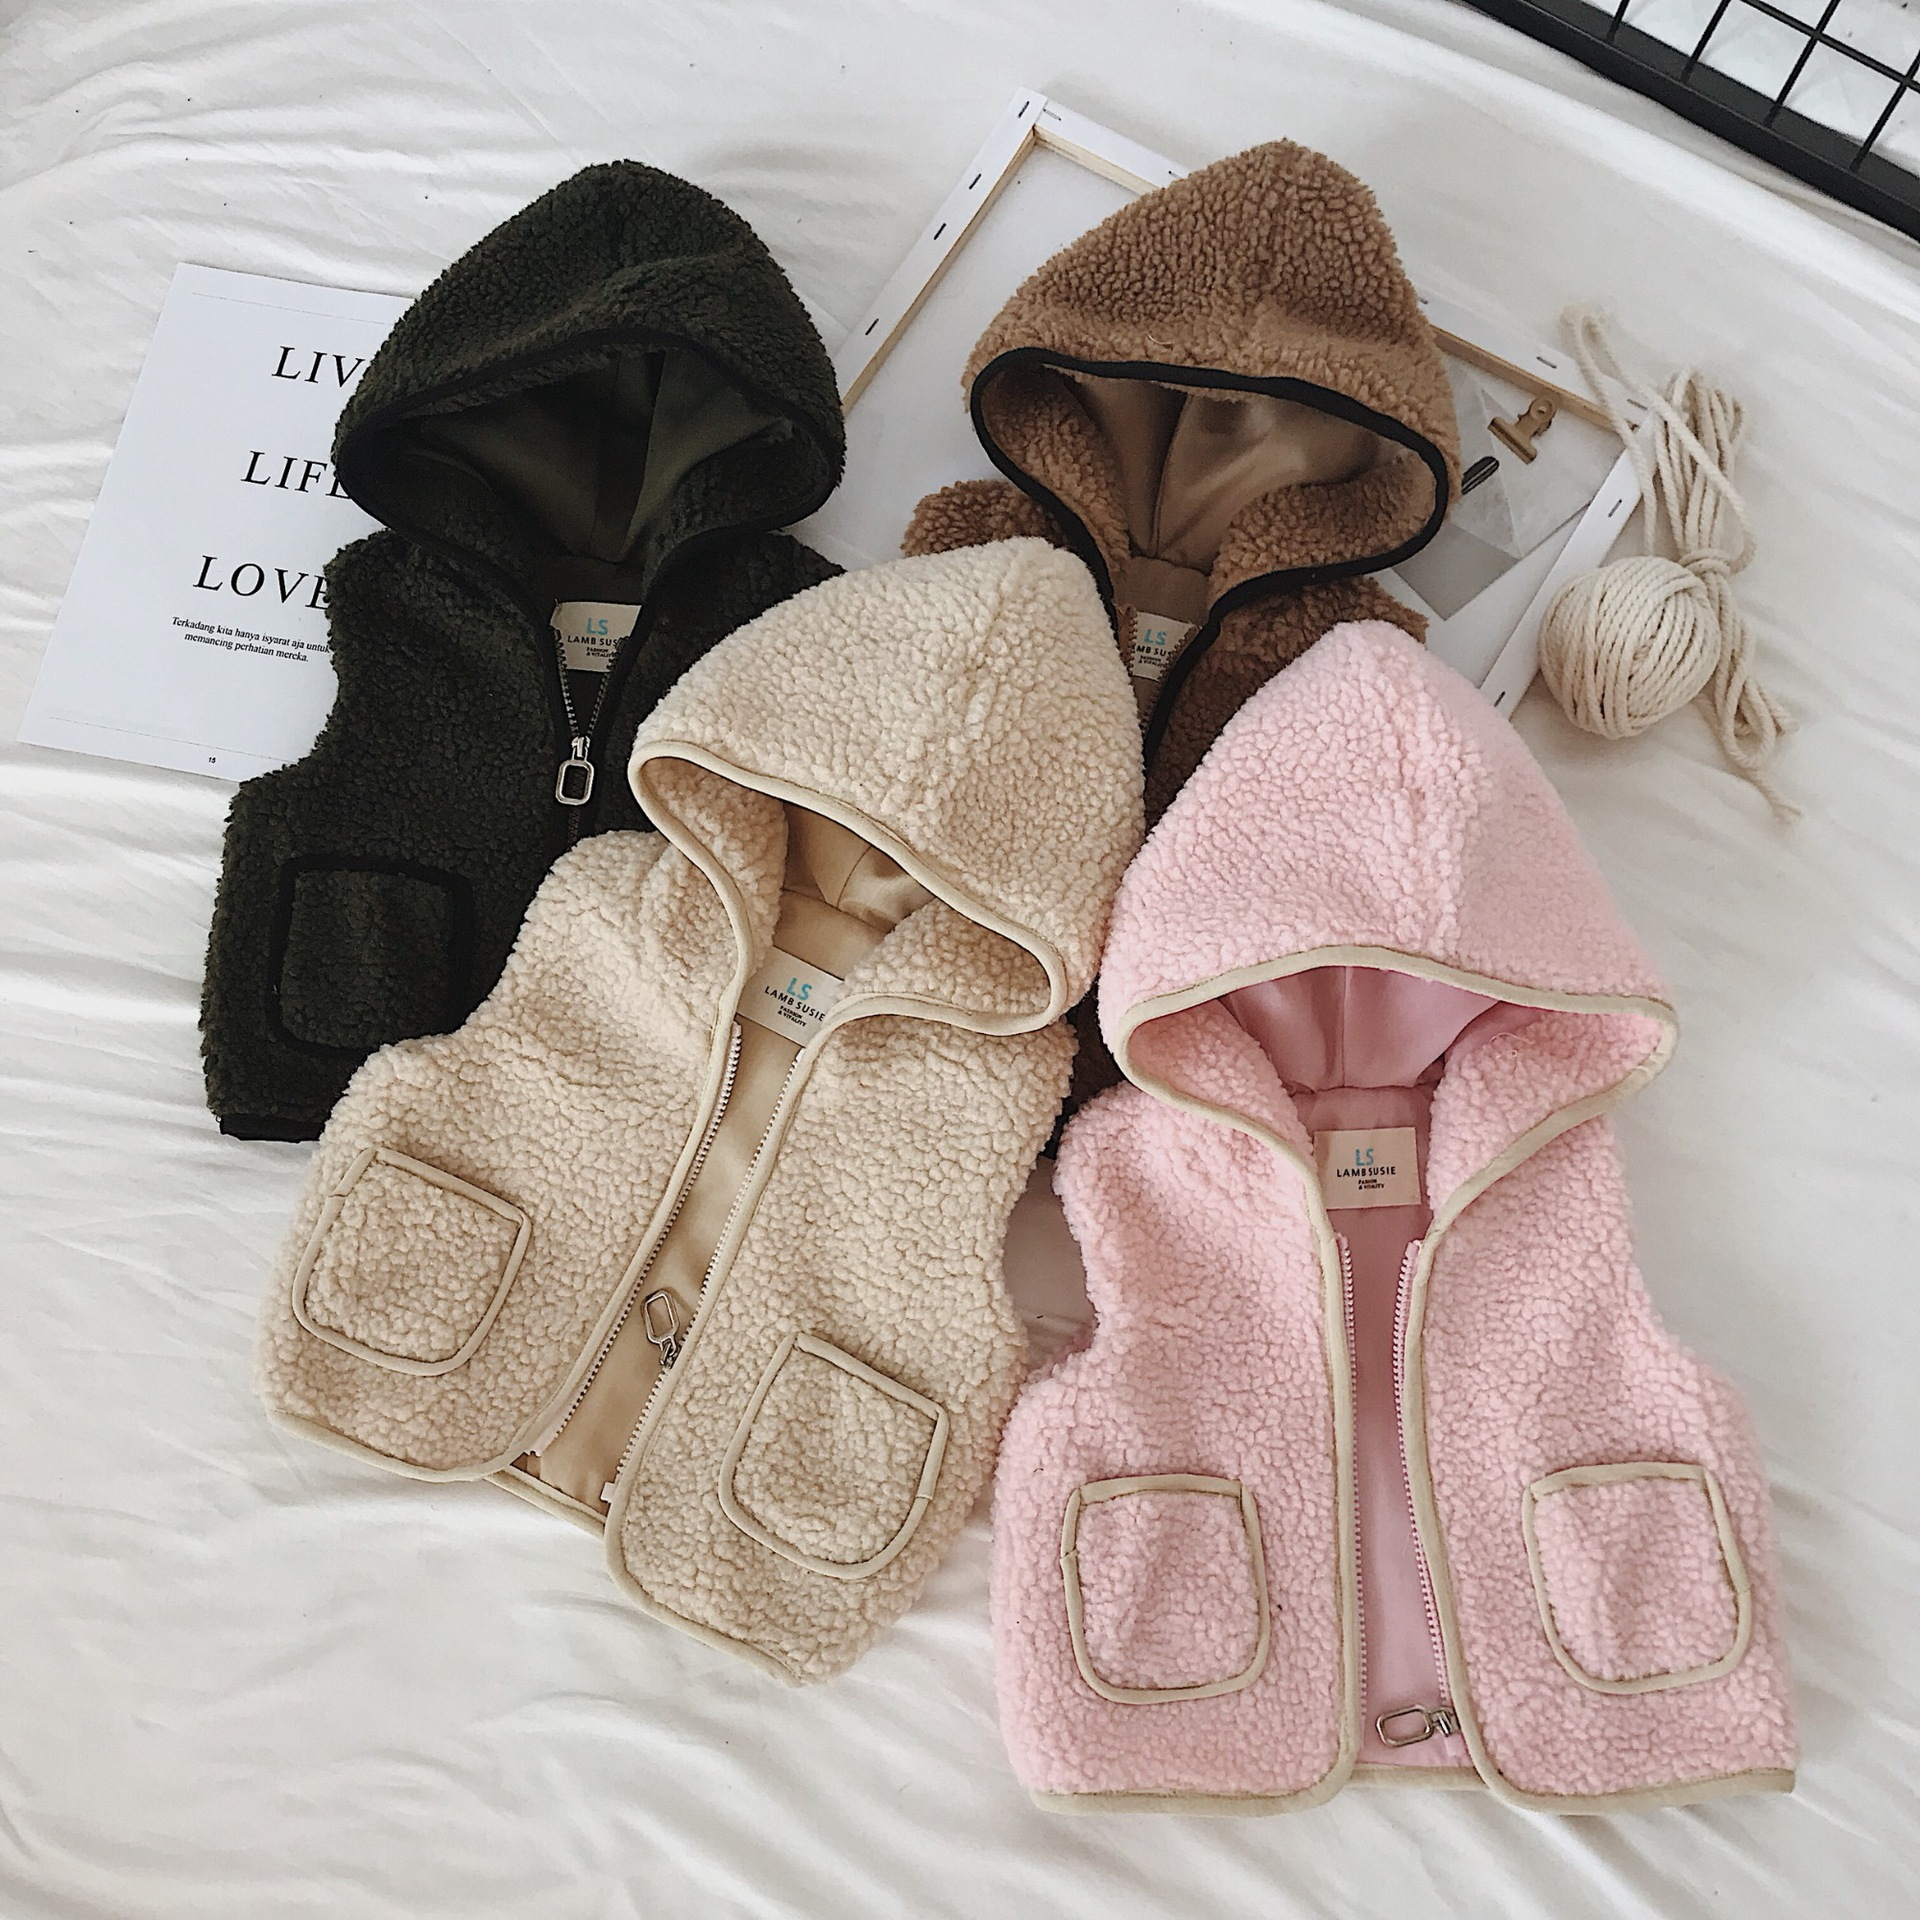 Baby Boy Vest Lamb Fur Vests Baby Girls Boys Christmas Kids Vests Waistcoats Vest Outerwear Baby Toddler Winter Clothes for 1-6Y kids vest children s girls vest hooded jacket winter autumn waistcoats for boy baby outerwear coats big teens girl clothes